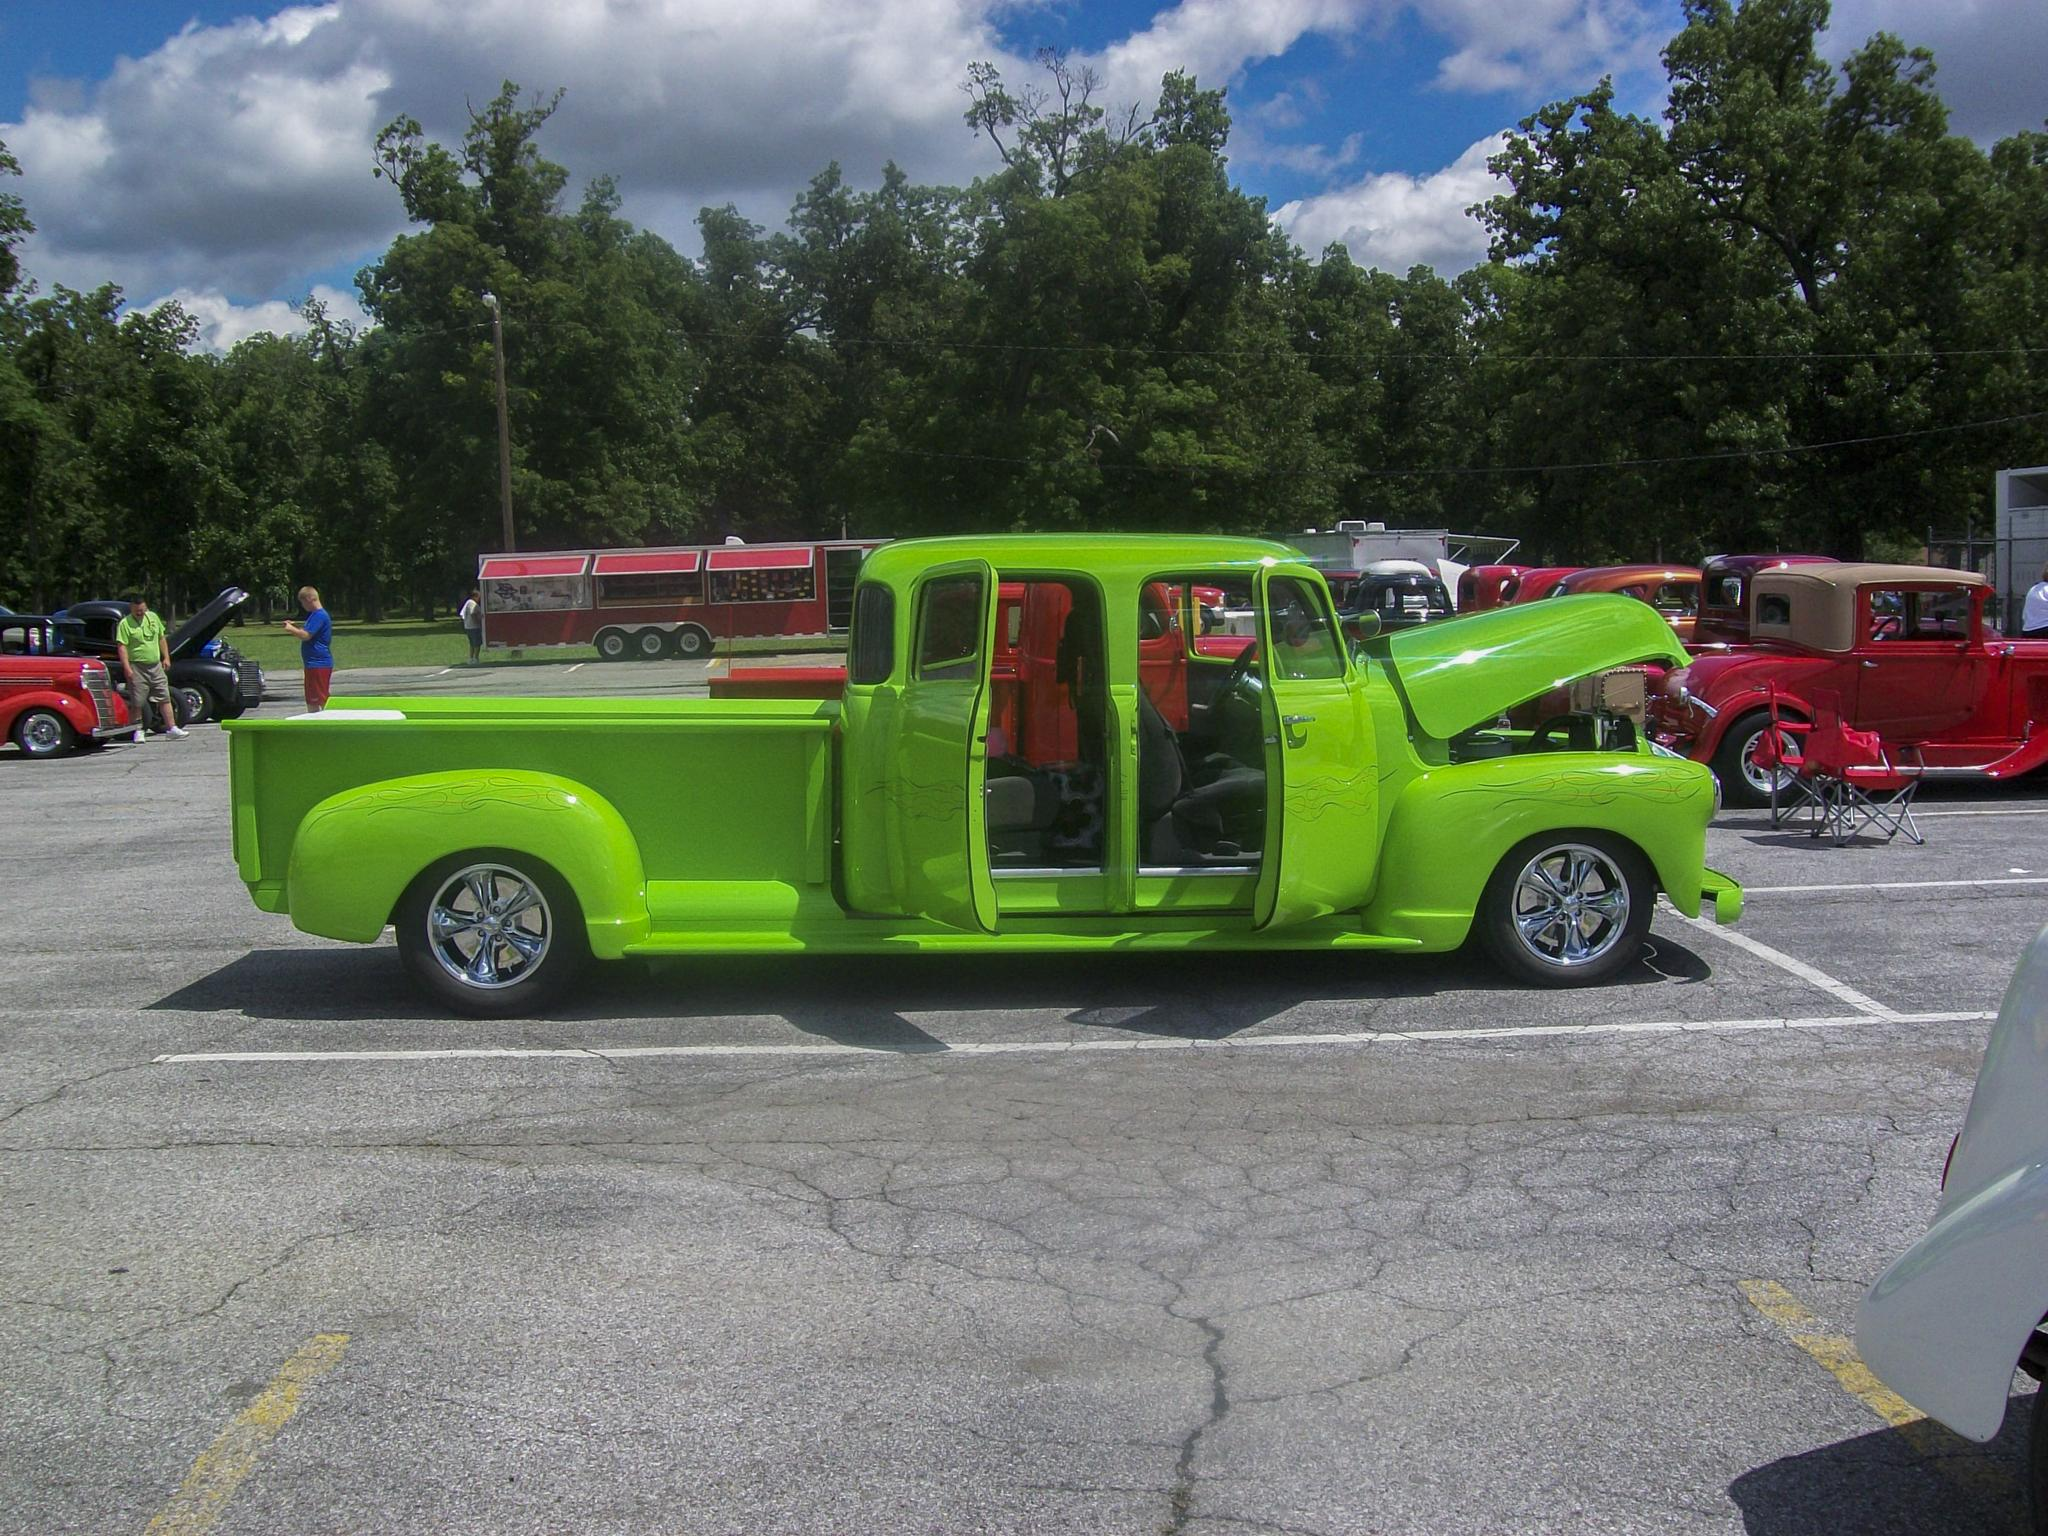 Chevy Crew Cab by Andrew Hershfeld